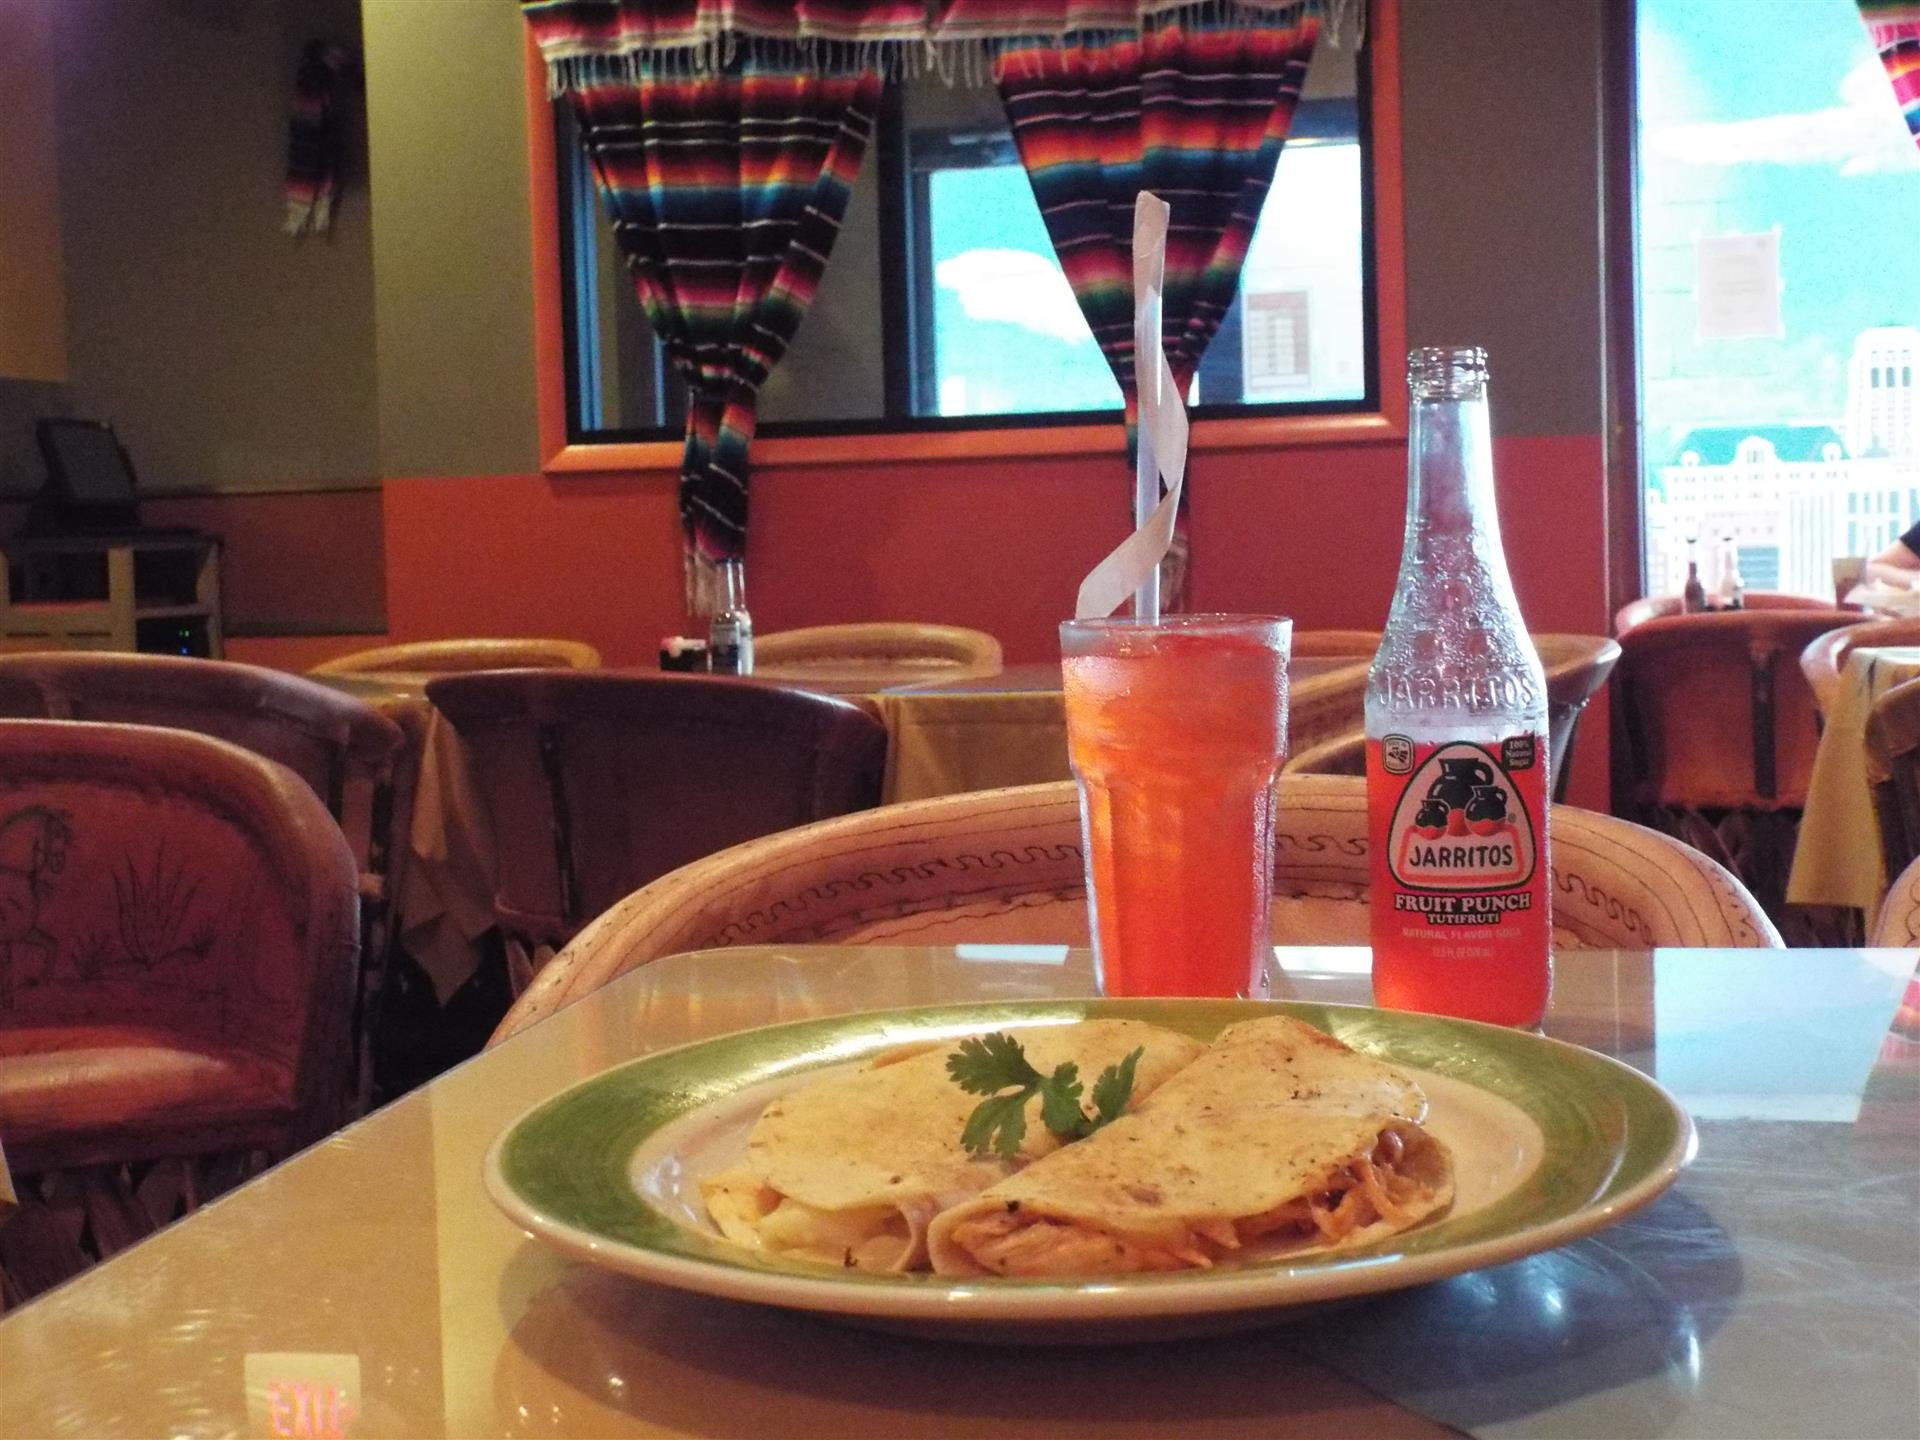 Tortilla on plate next to orange soda